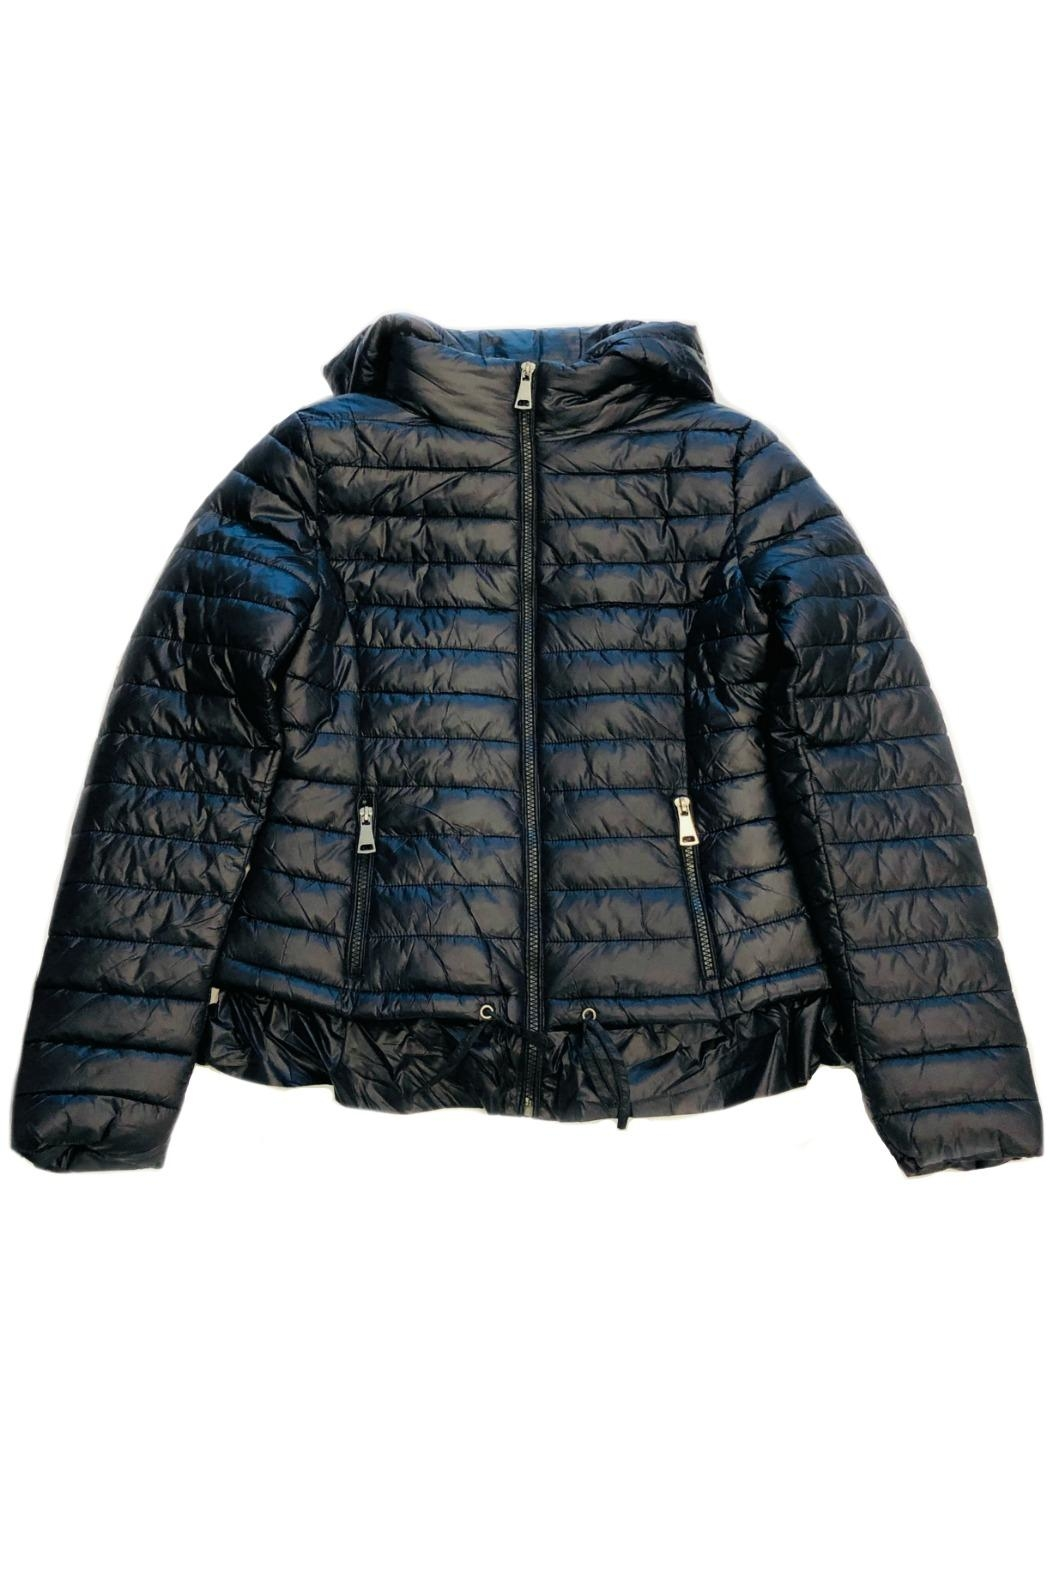 ANTONELLO SERIO Puffer Jacket - Front Cropped Image